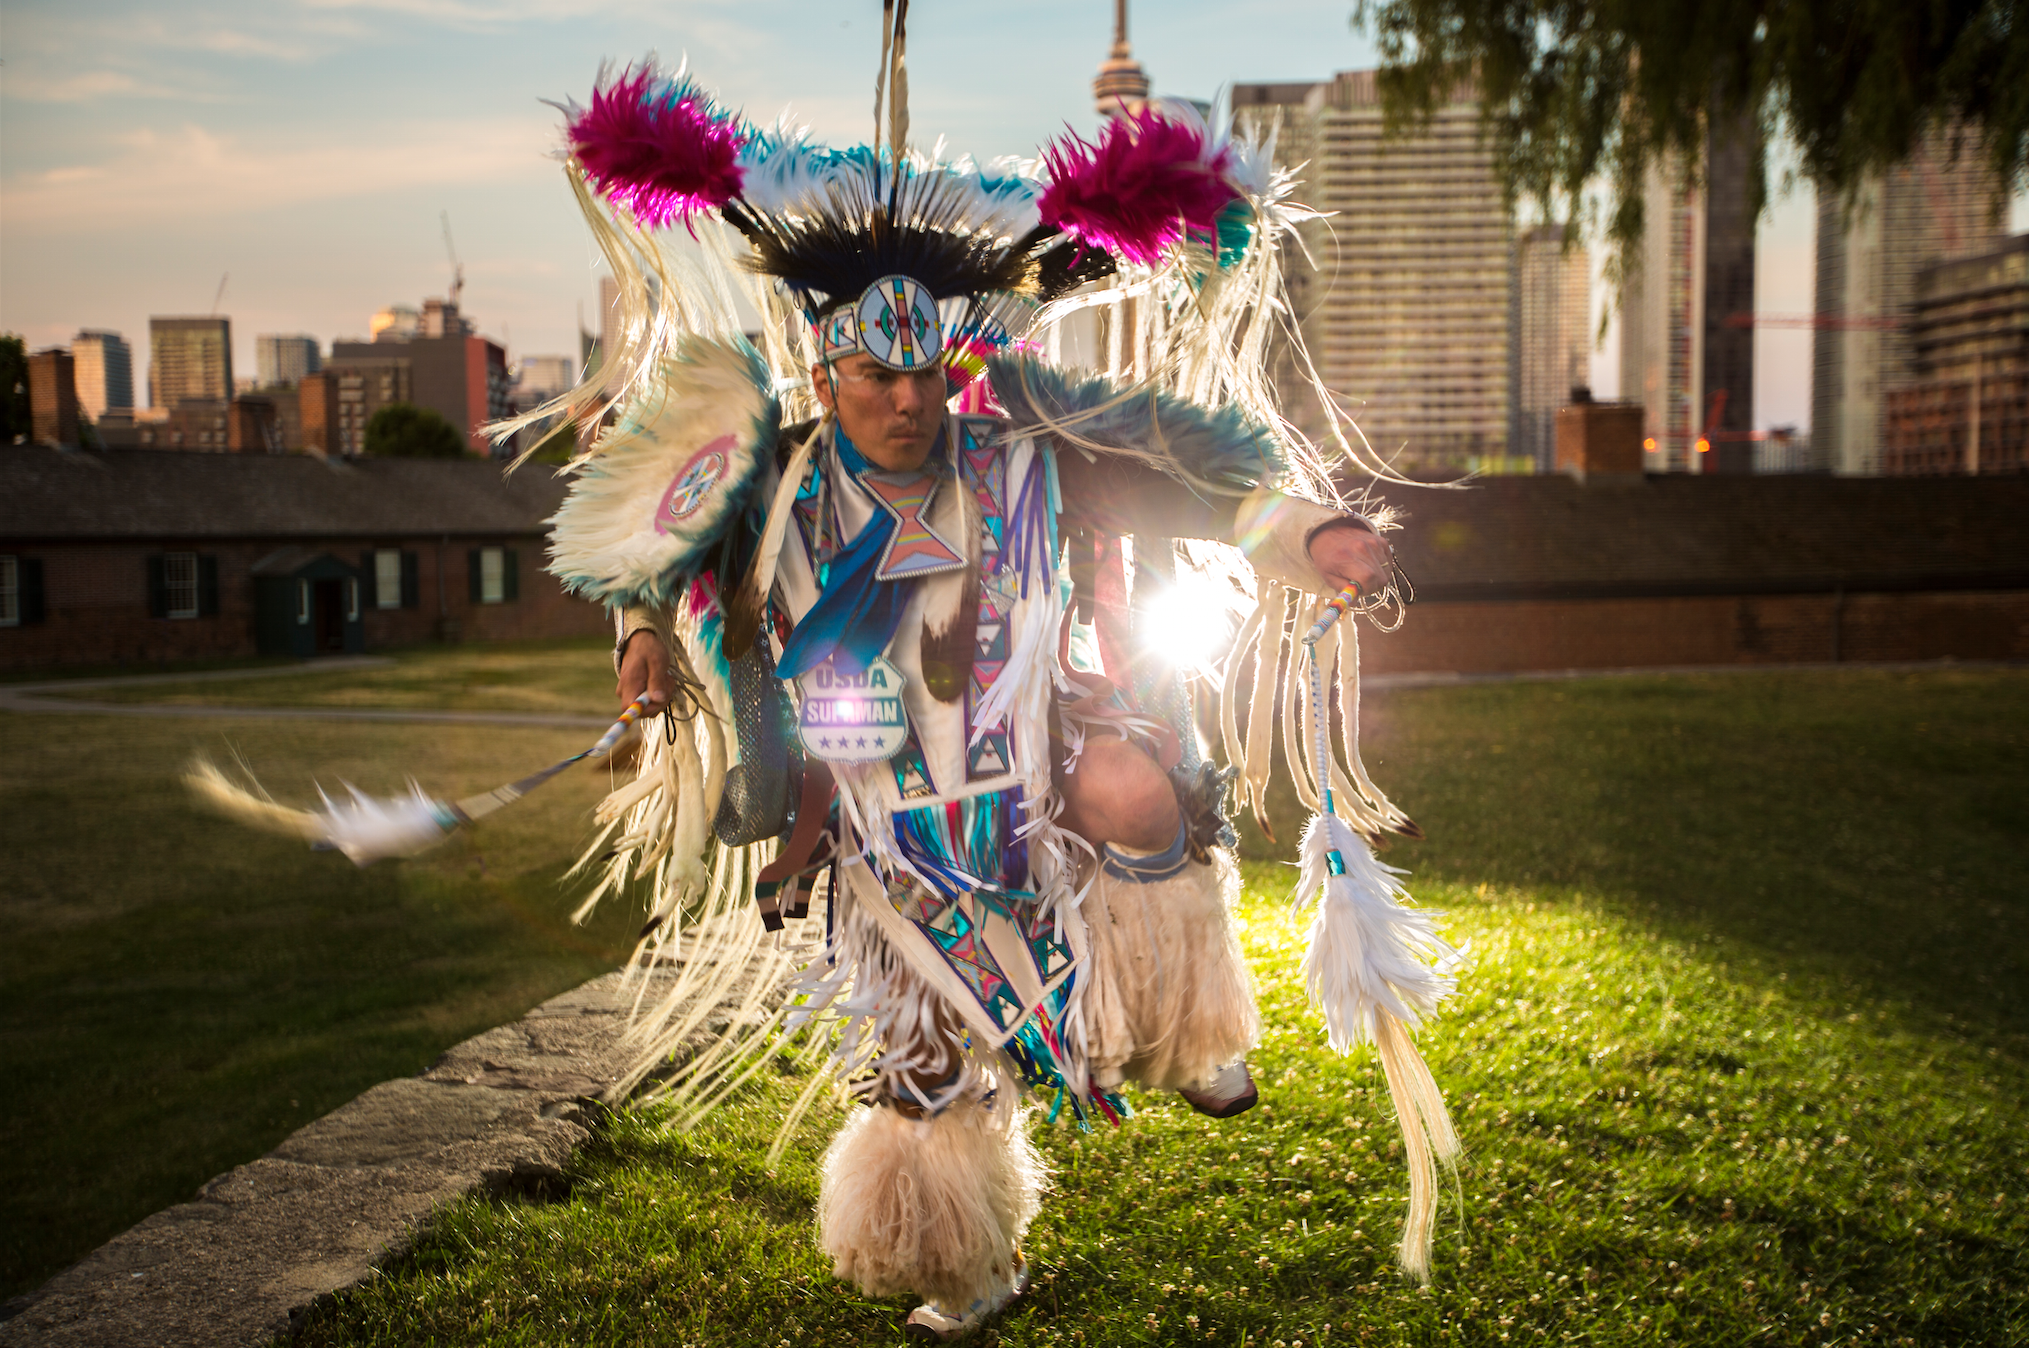 SUPAMAN in traditional Native American fancy dress, crafted by his matriarchs, dancing in the natural, vibrant light of Mother Nature juxtaposed by the metropolis backdrop of our concrete&steel, cold&engineered current culture; a metaphor of who is SUPAMAN, riding the rails of cyber promotion injecting our world with a positive, artistic, spiritual existence;  a neon lit, electrified, fancy-dancing,   rapping Healer.